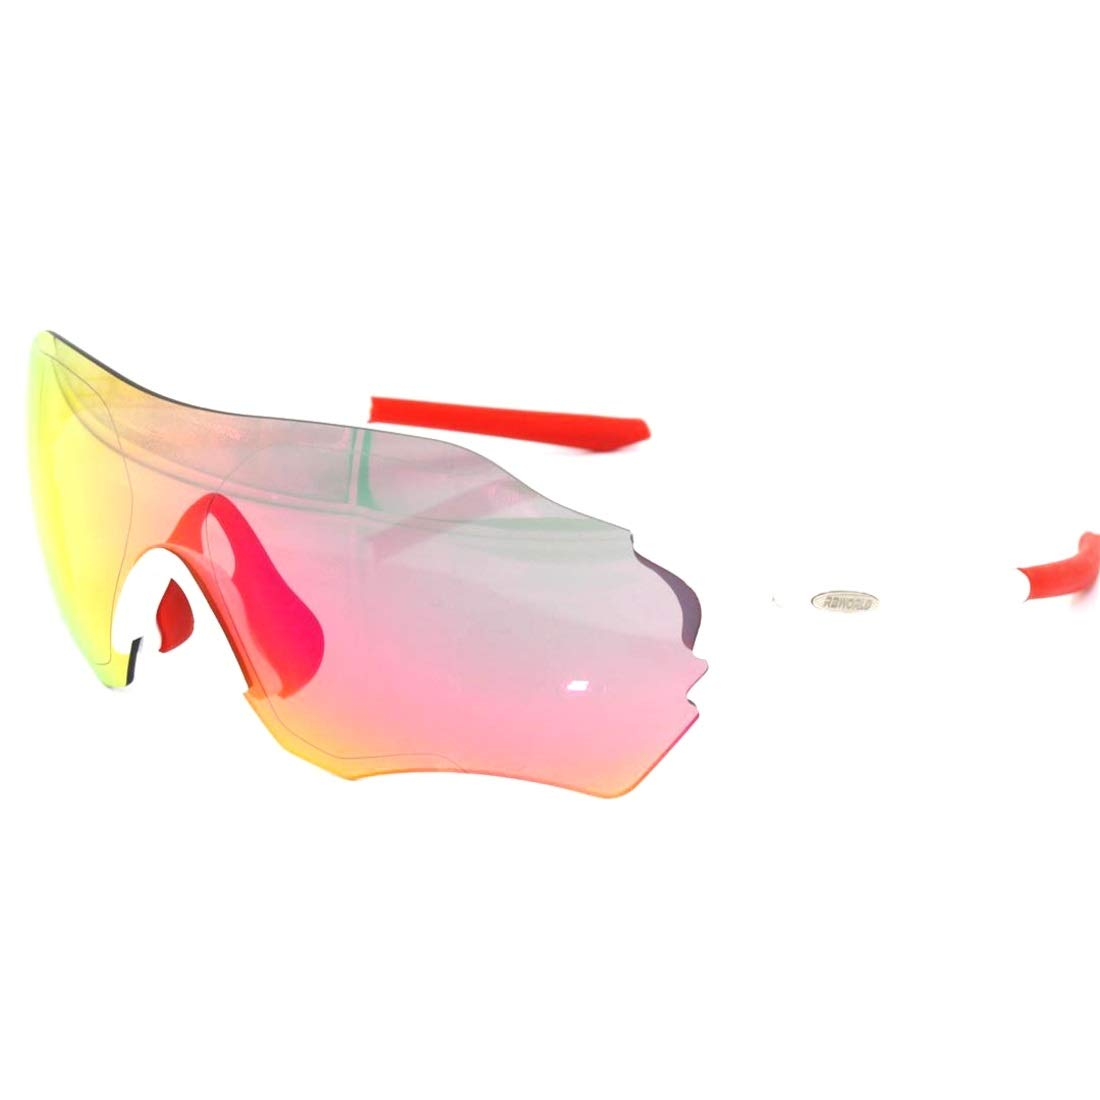 BAOYIT Polarized Sports Running Night Vision Riding Glasses Ultra-Light Frame Fishing Mountaineering Running Sports Glasses Men and Women (Color : White) by BAOYIT